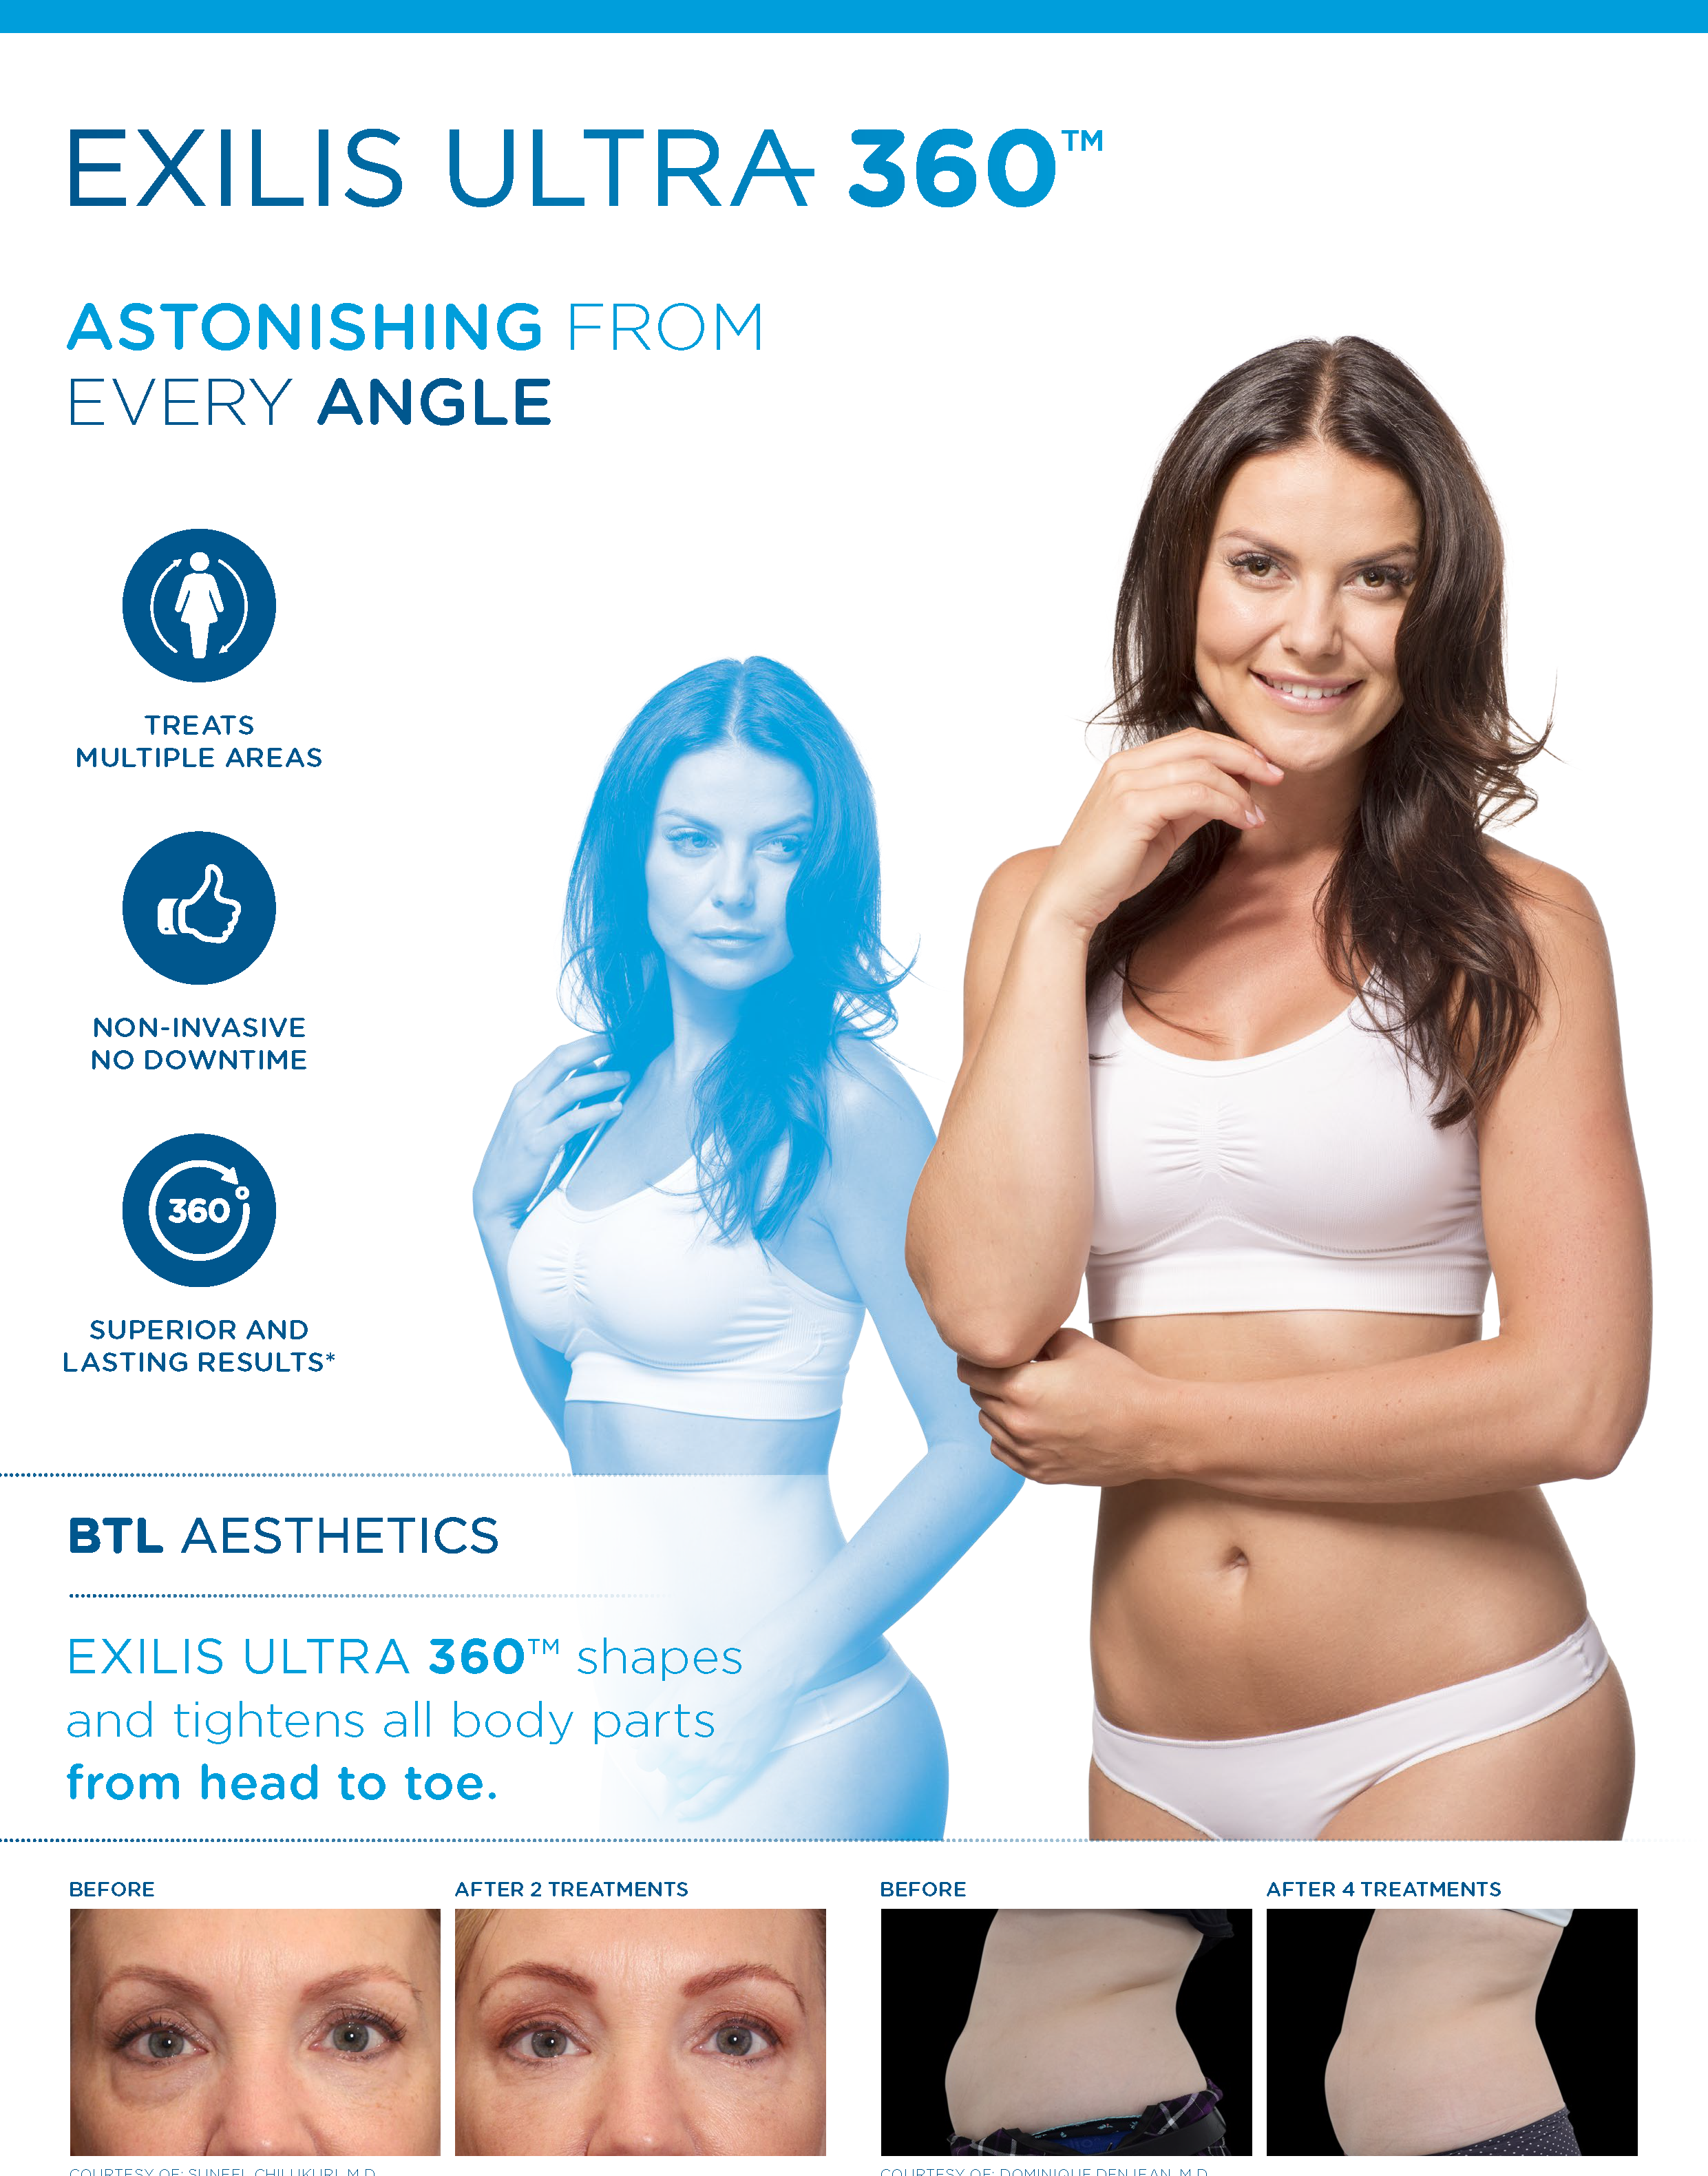 Exilis Ultra 360 Look Good From Any Angle